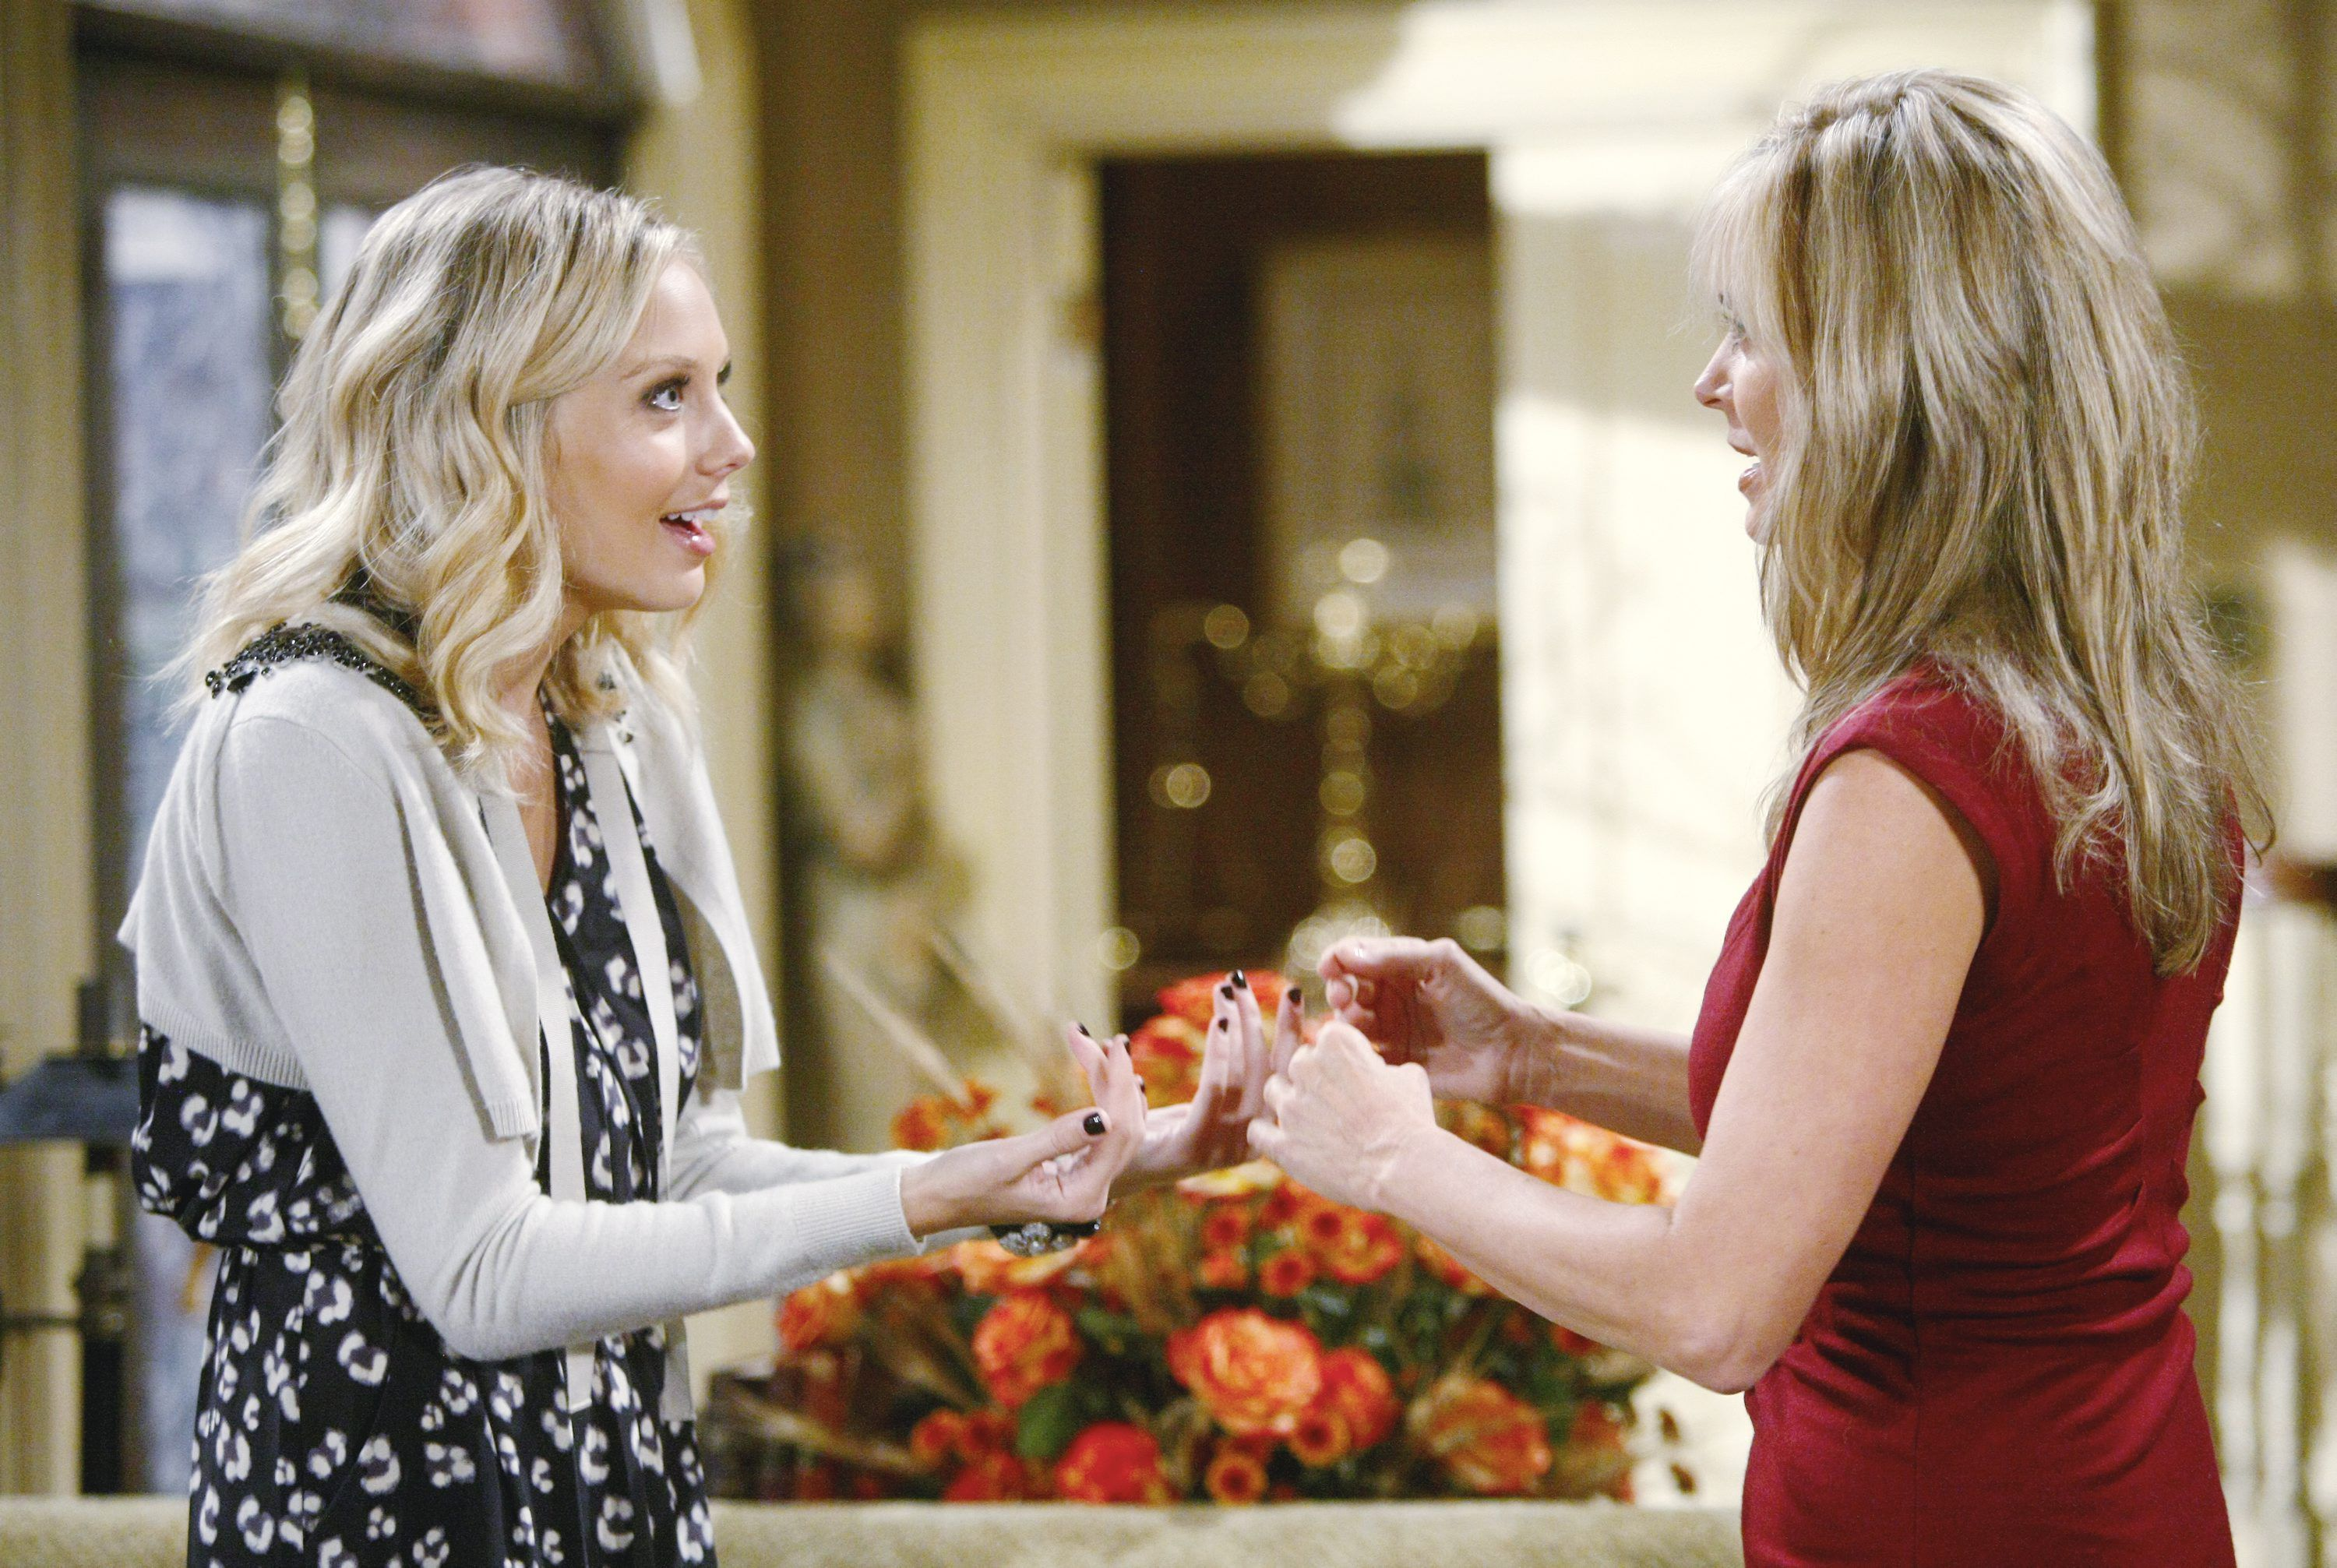 6. Abby and Ashley